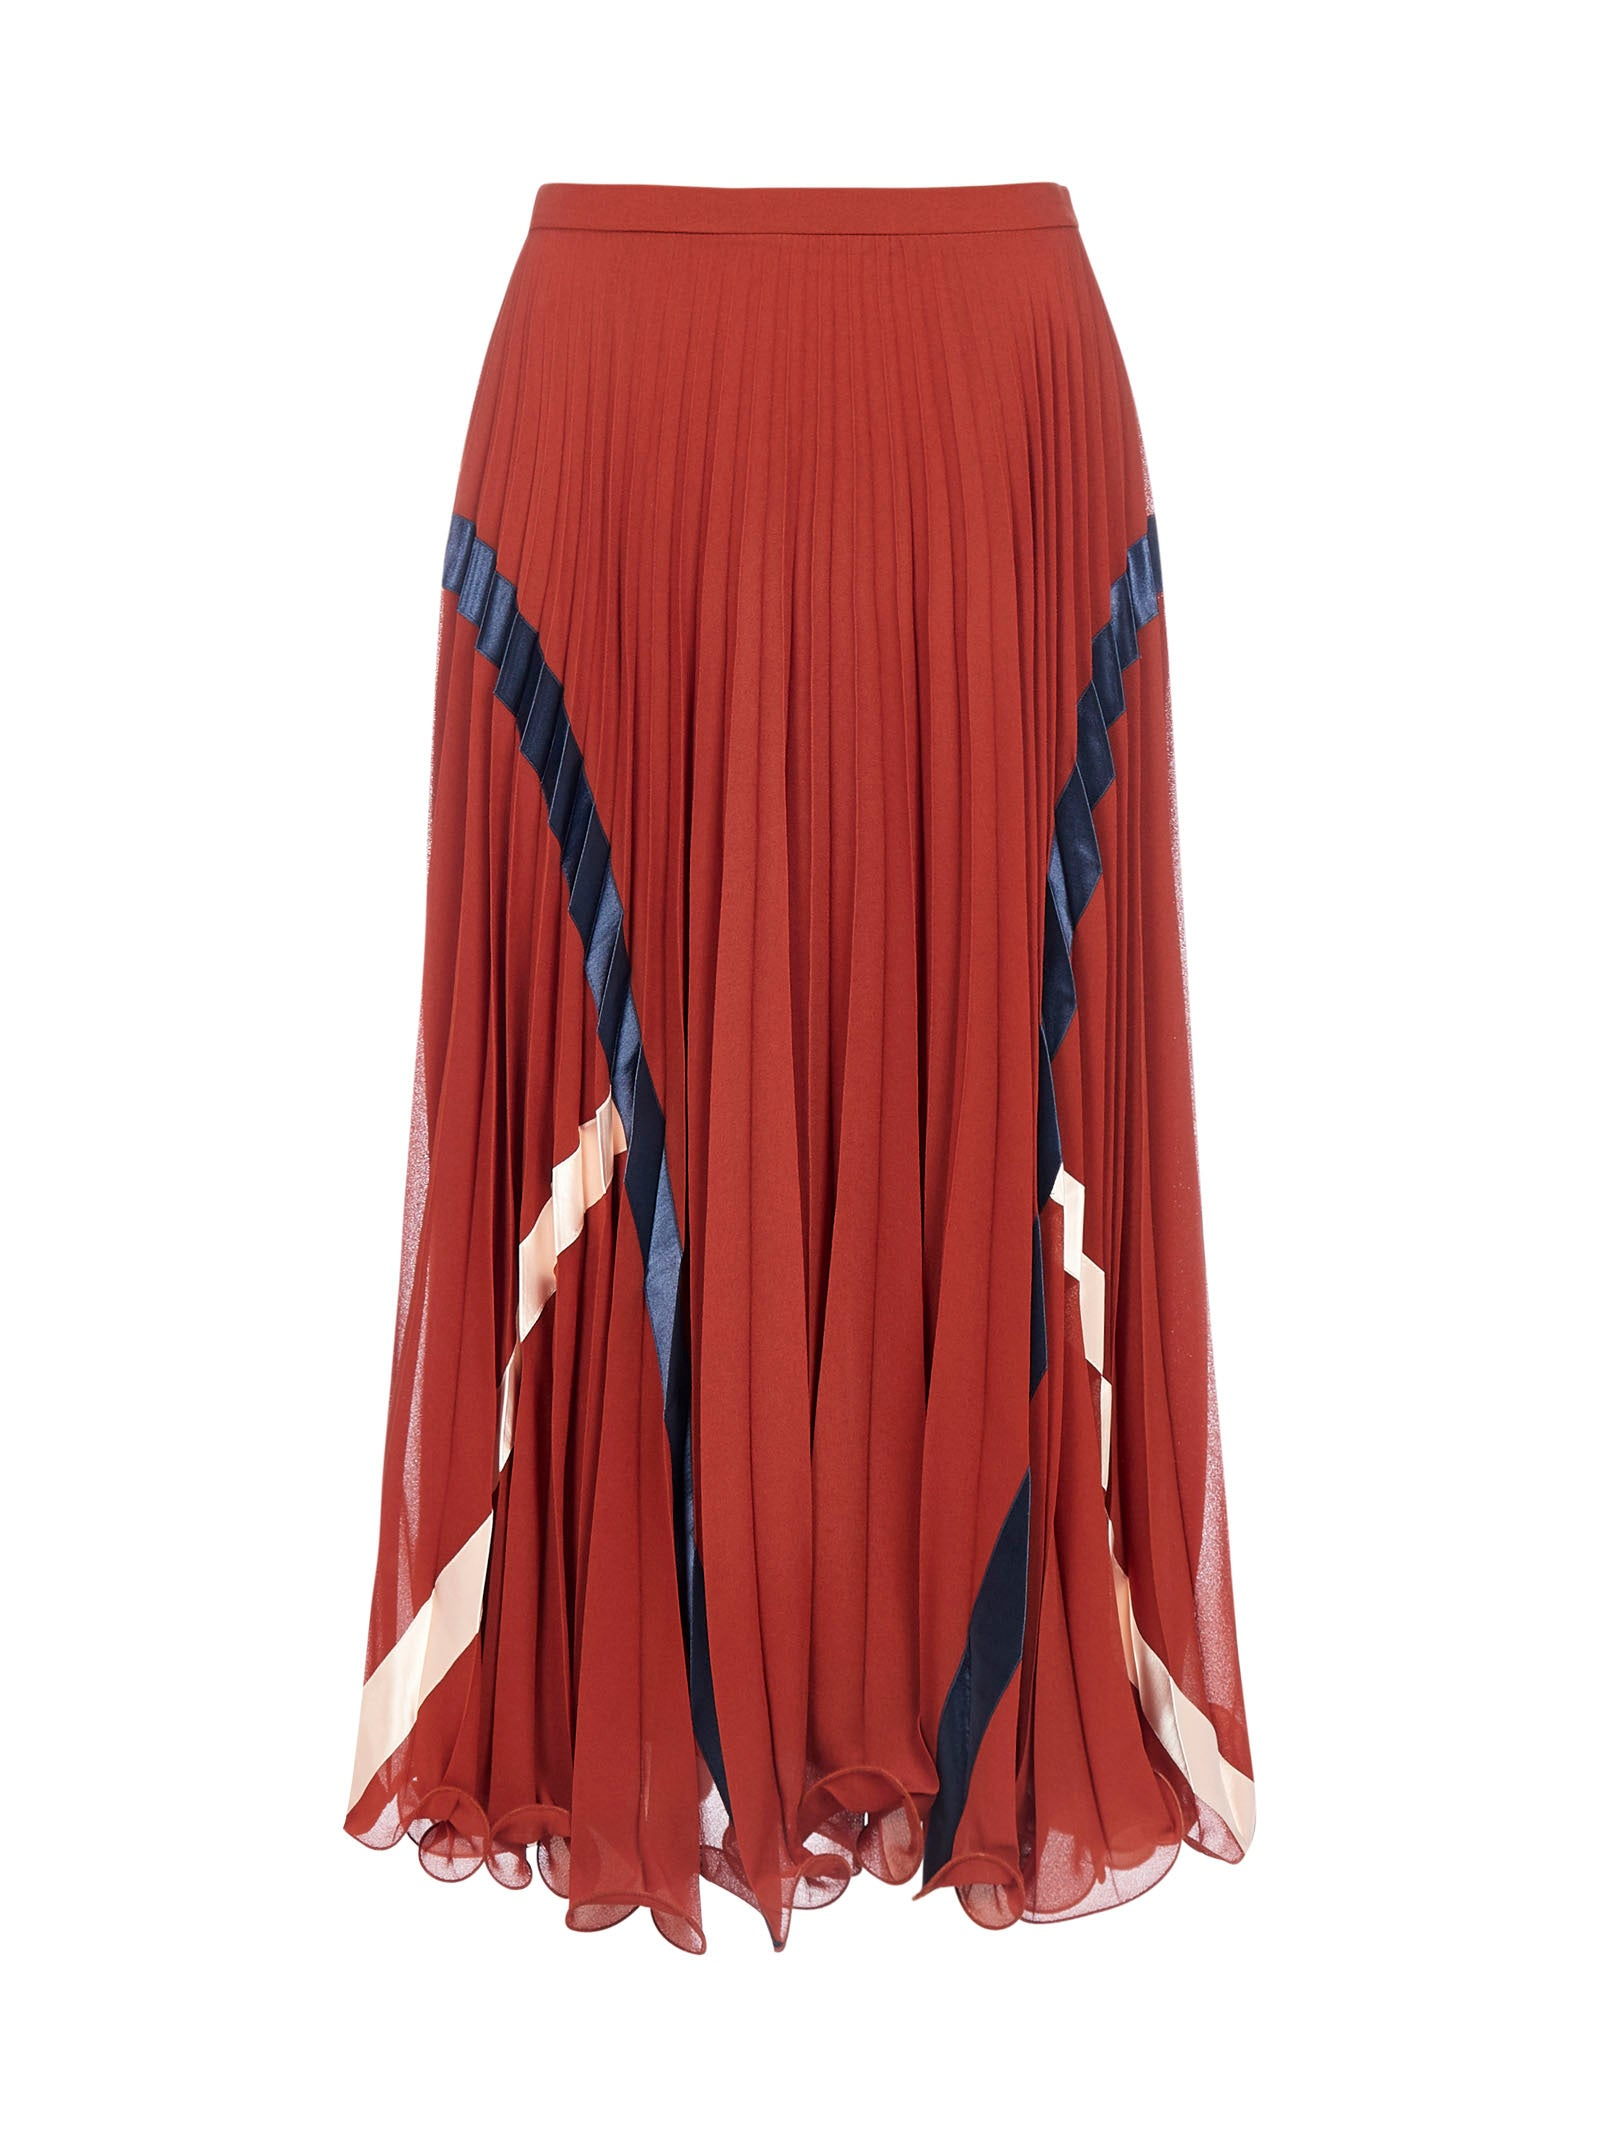 SEE BY CHLOÉ SEE BY CHLOÉ PLEATED MIDI SKIRT